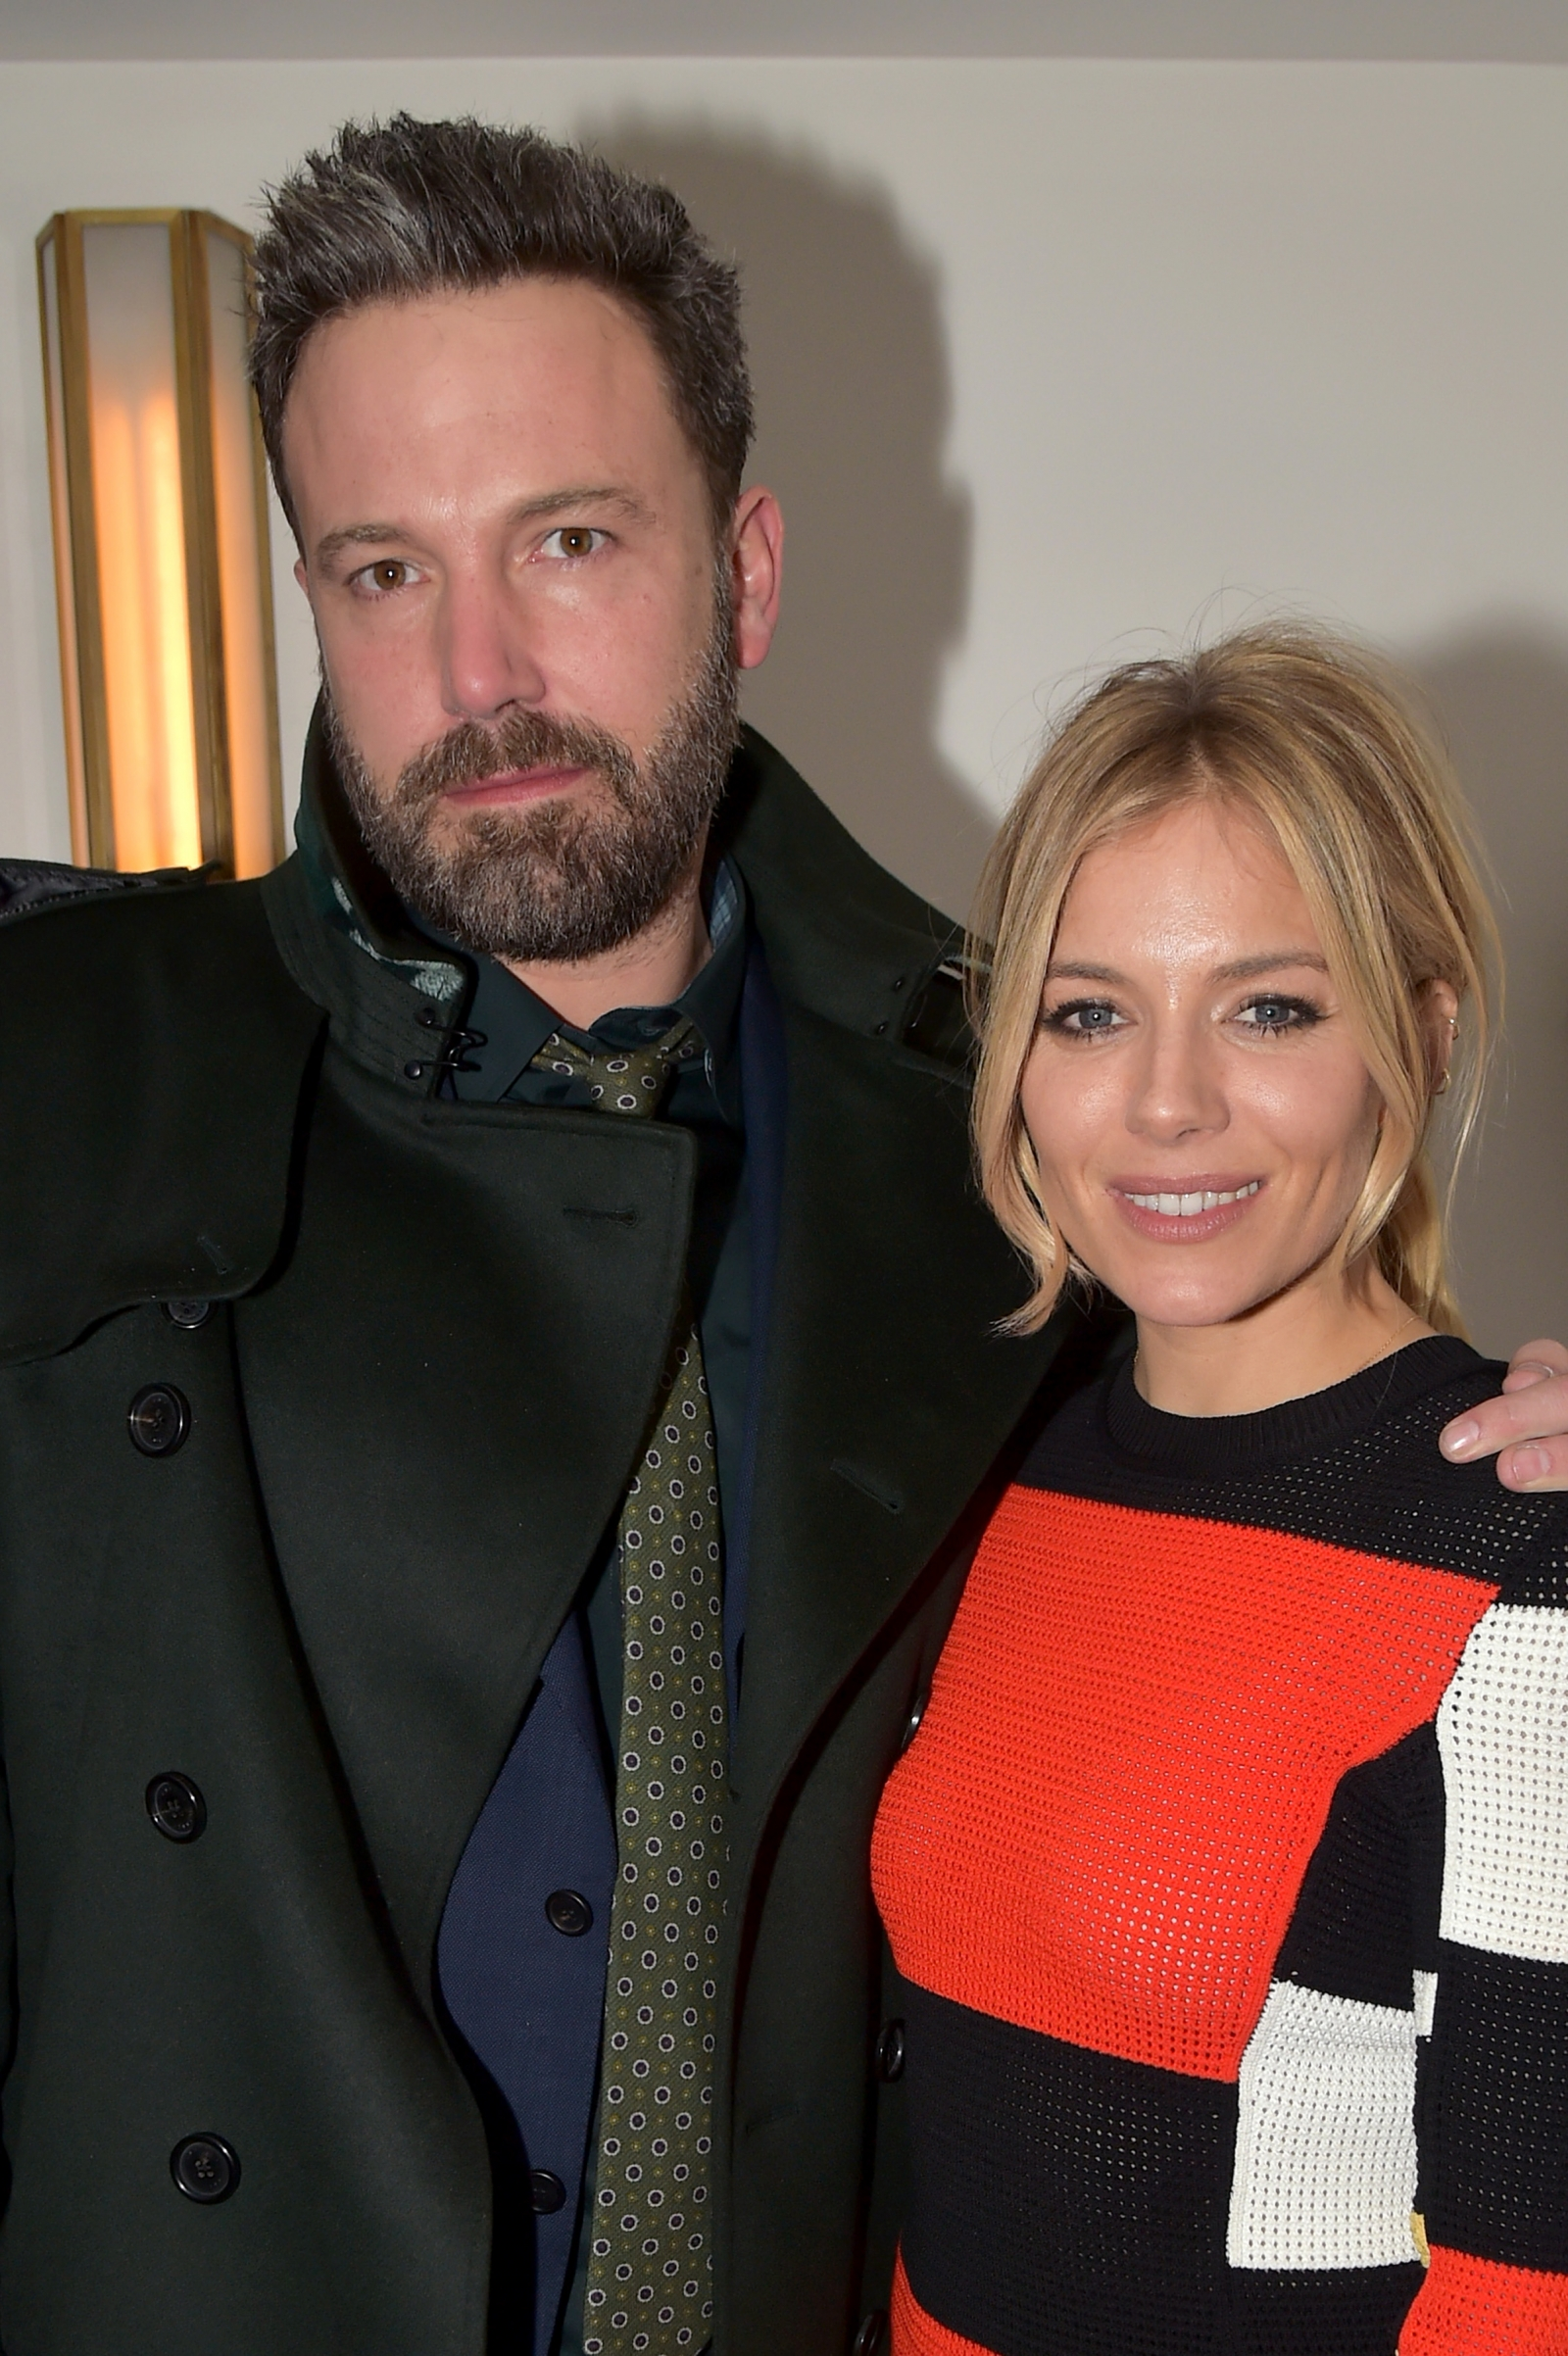 Ben Affleck and Sienna Miller